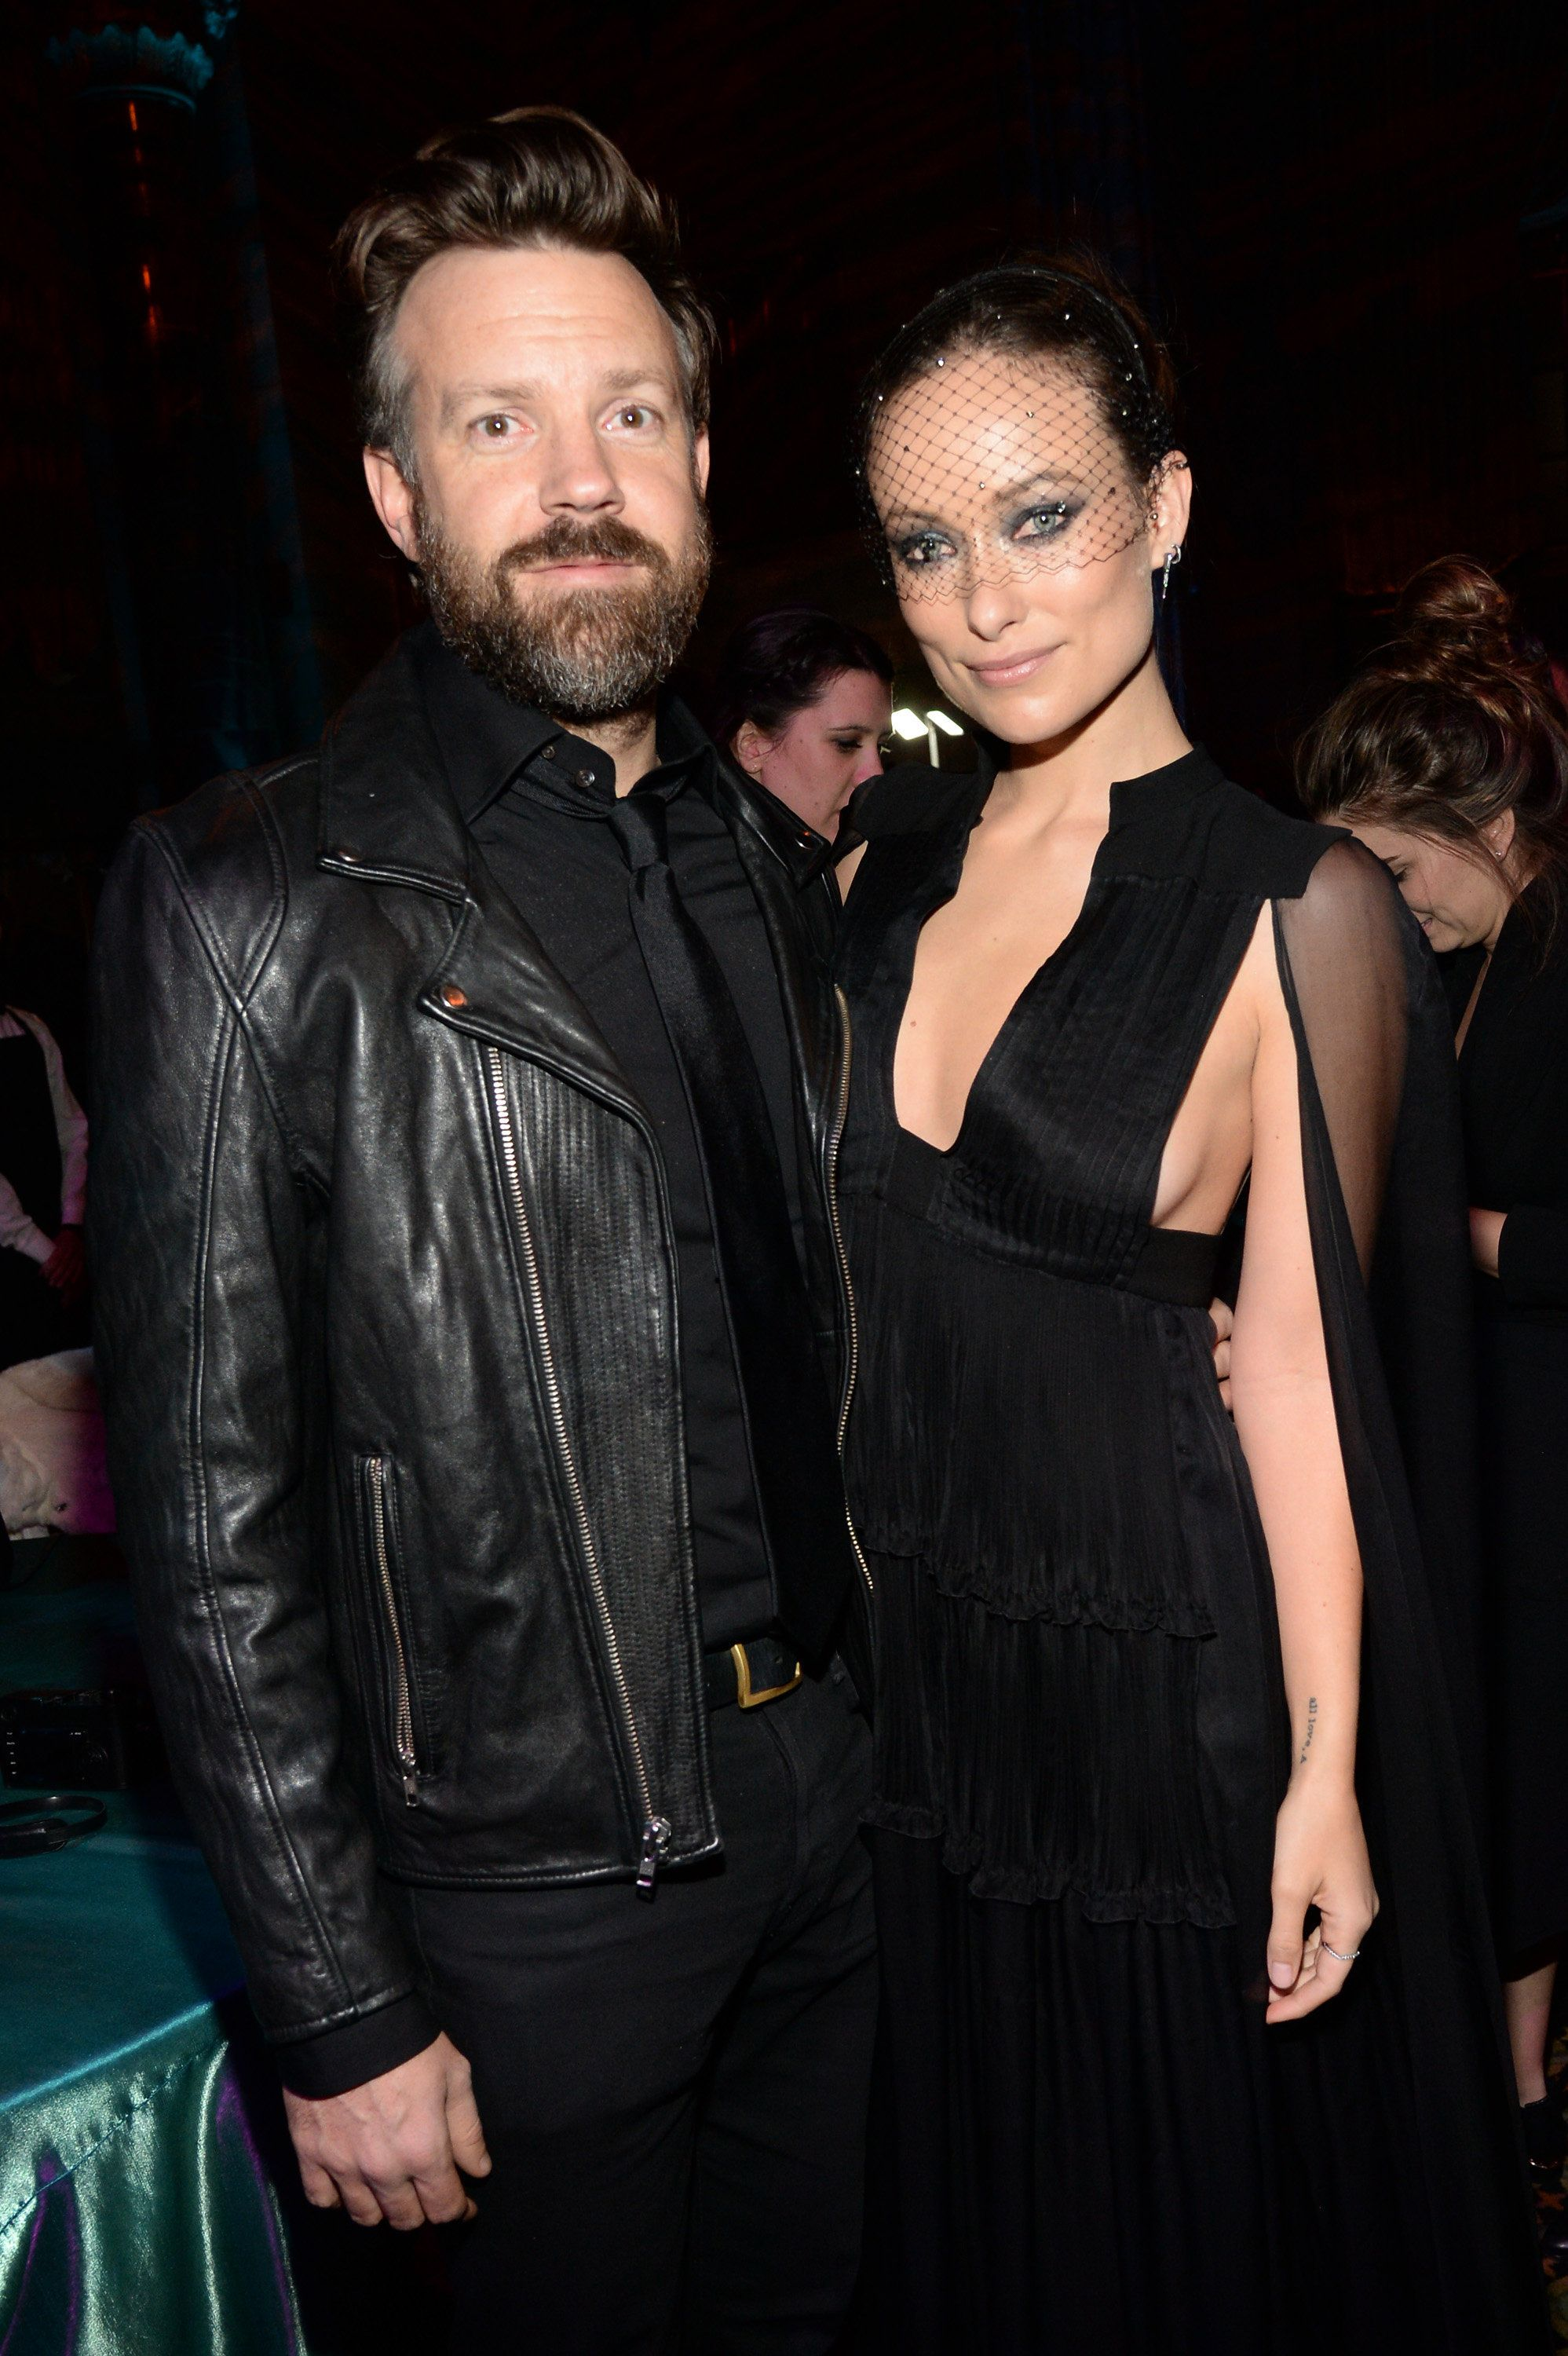 Jason Sudeikis and Olivia Wilde attend the after party of the New York premiere of 'Vinyl' at Ziegfeld Theatre on January 15,